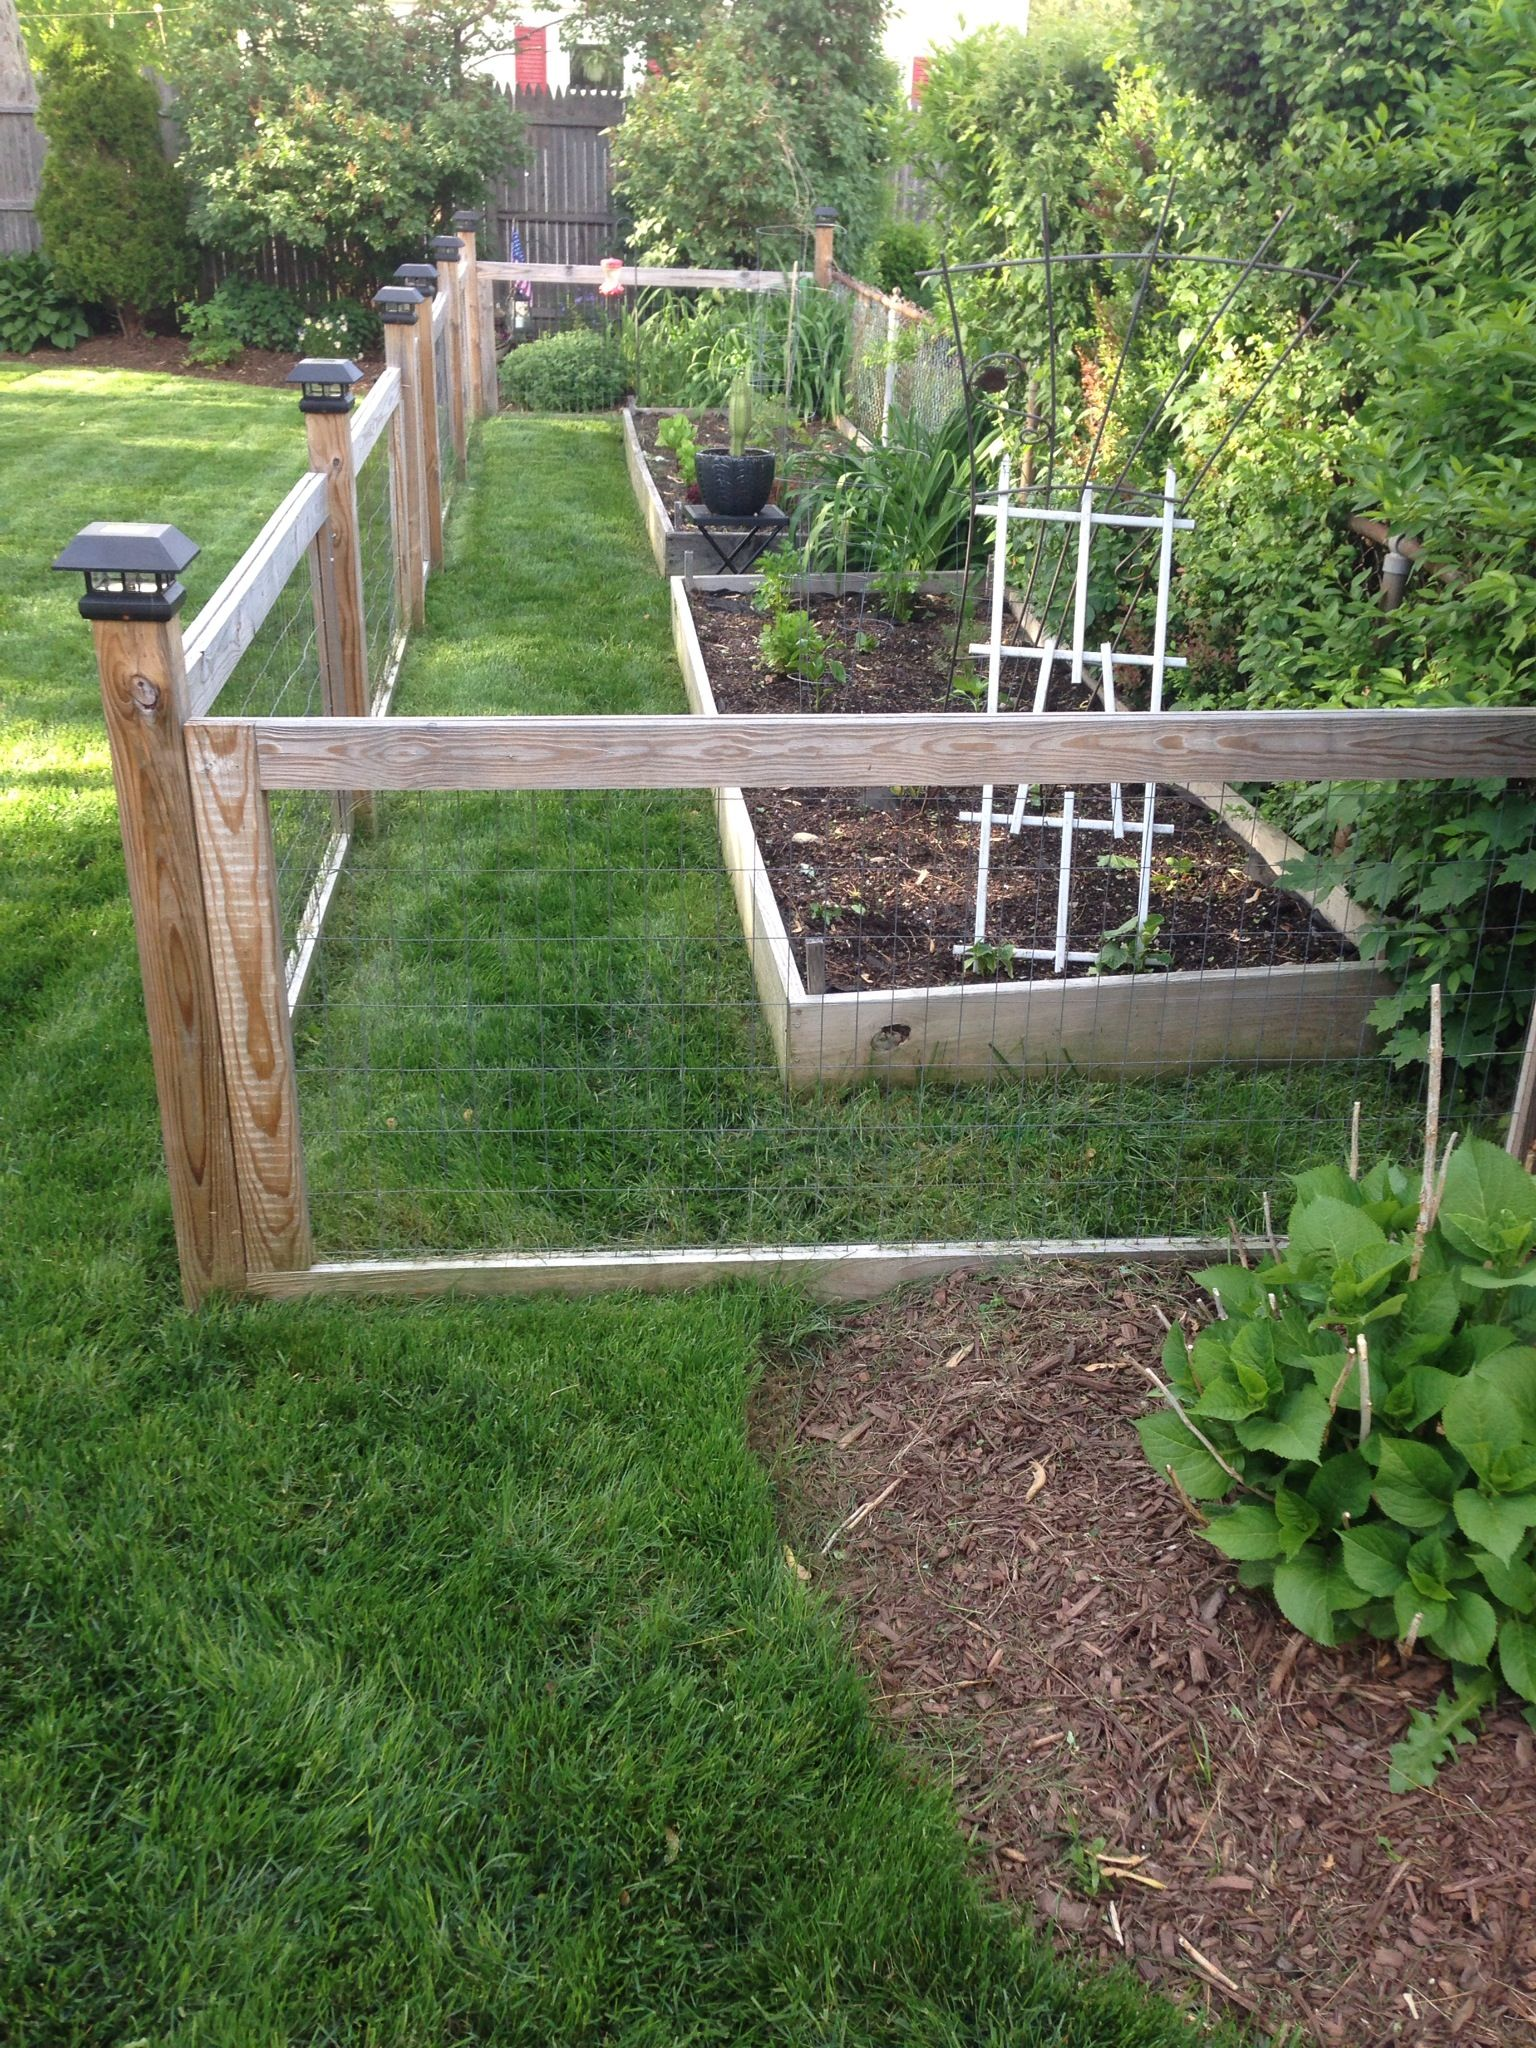 Homemade garden ideas - Homemade Garden Fence With Raised Beds